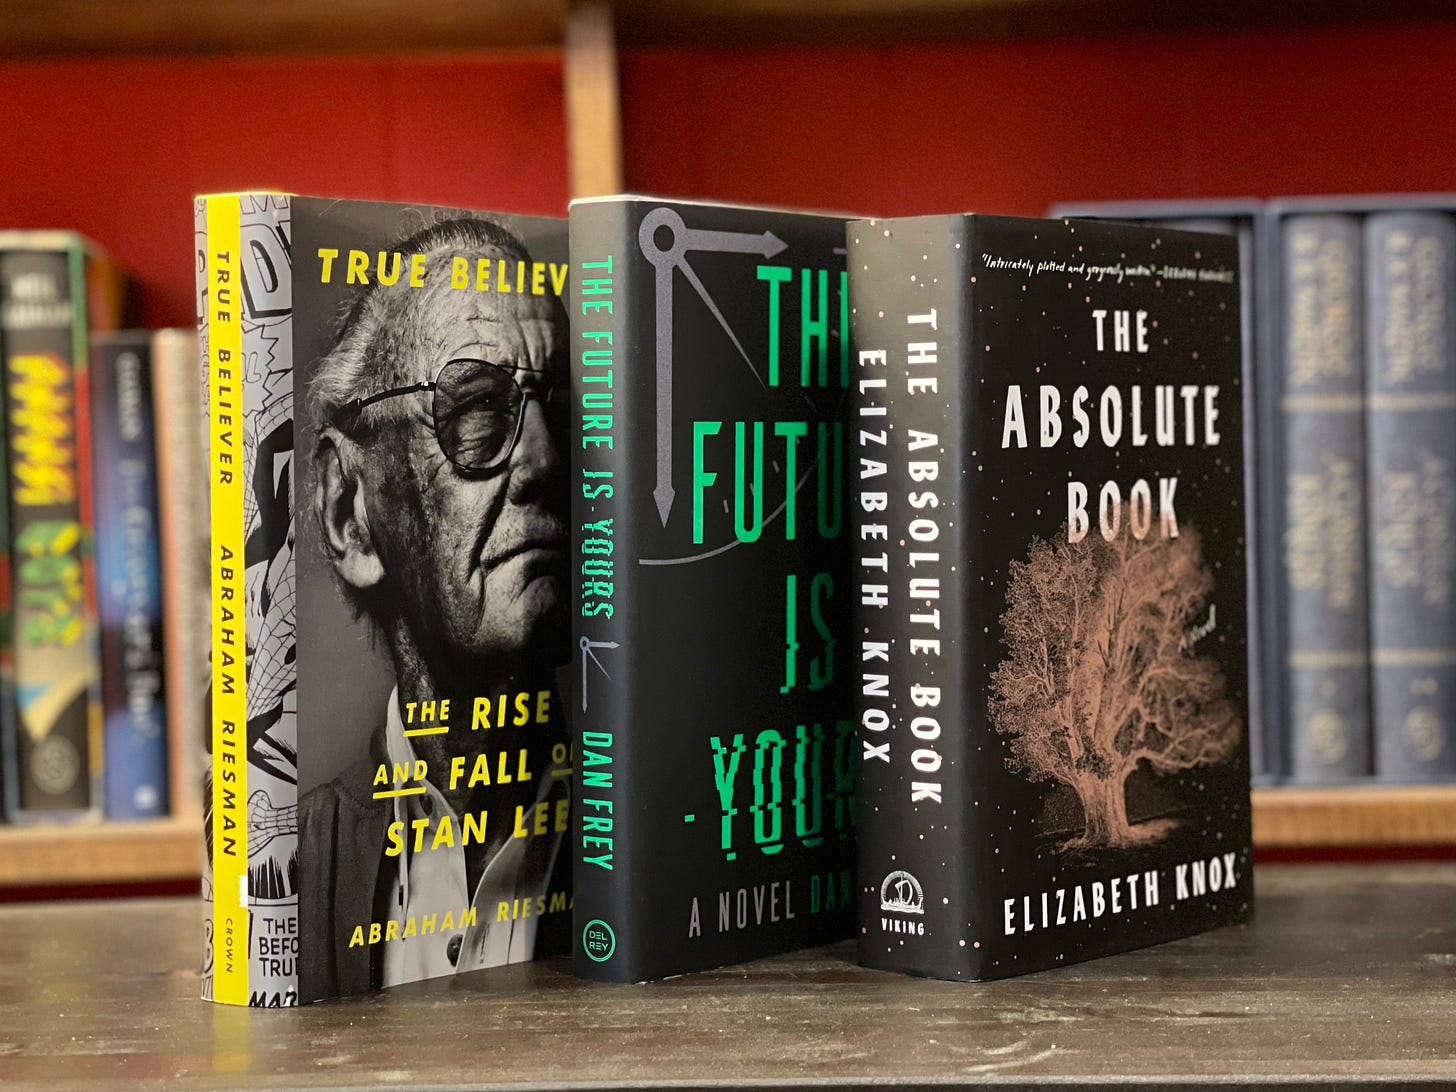 Three books stand up on a table: True Believer, The Future is Yours, and The Absolute Book